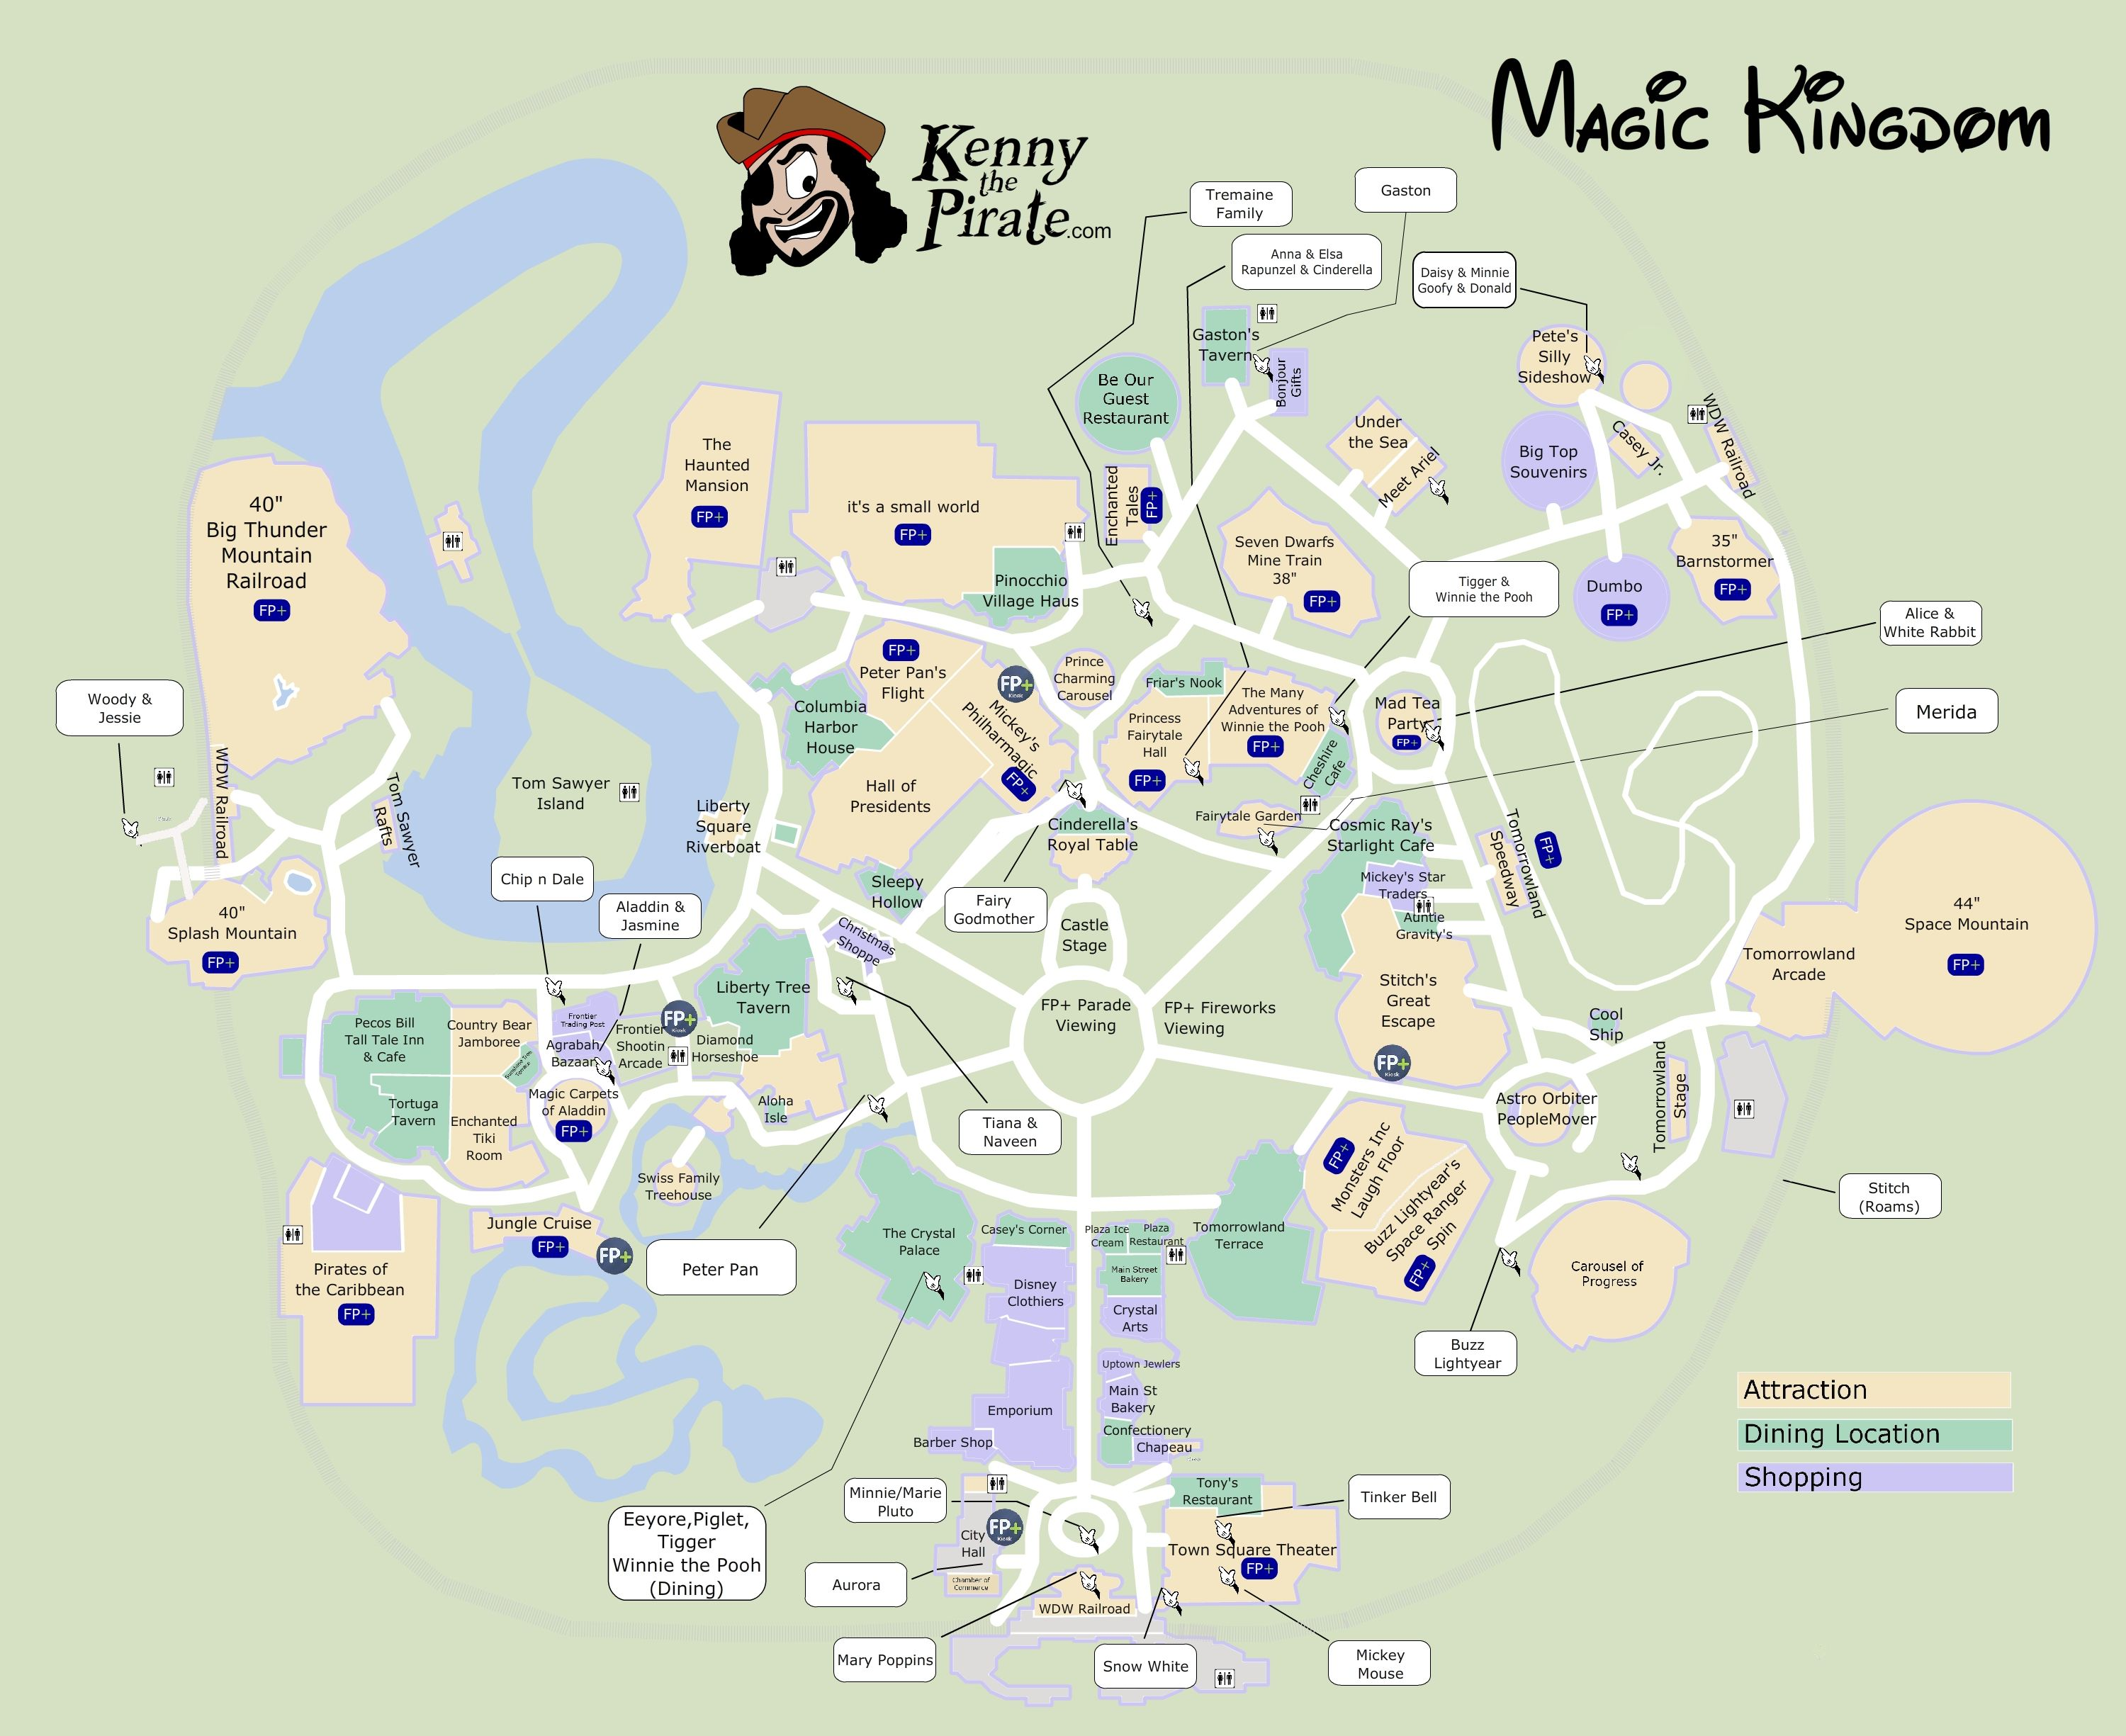 photo relating to Printable Magic Kingdom Map identify Magic Kingdom Map like Fastp As well as spots, rides